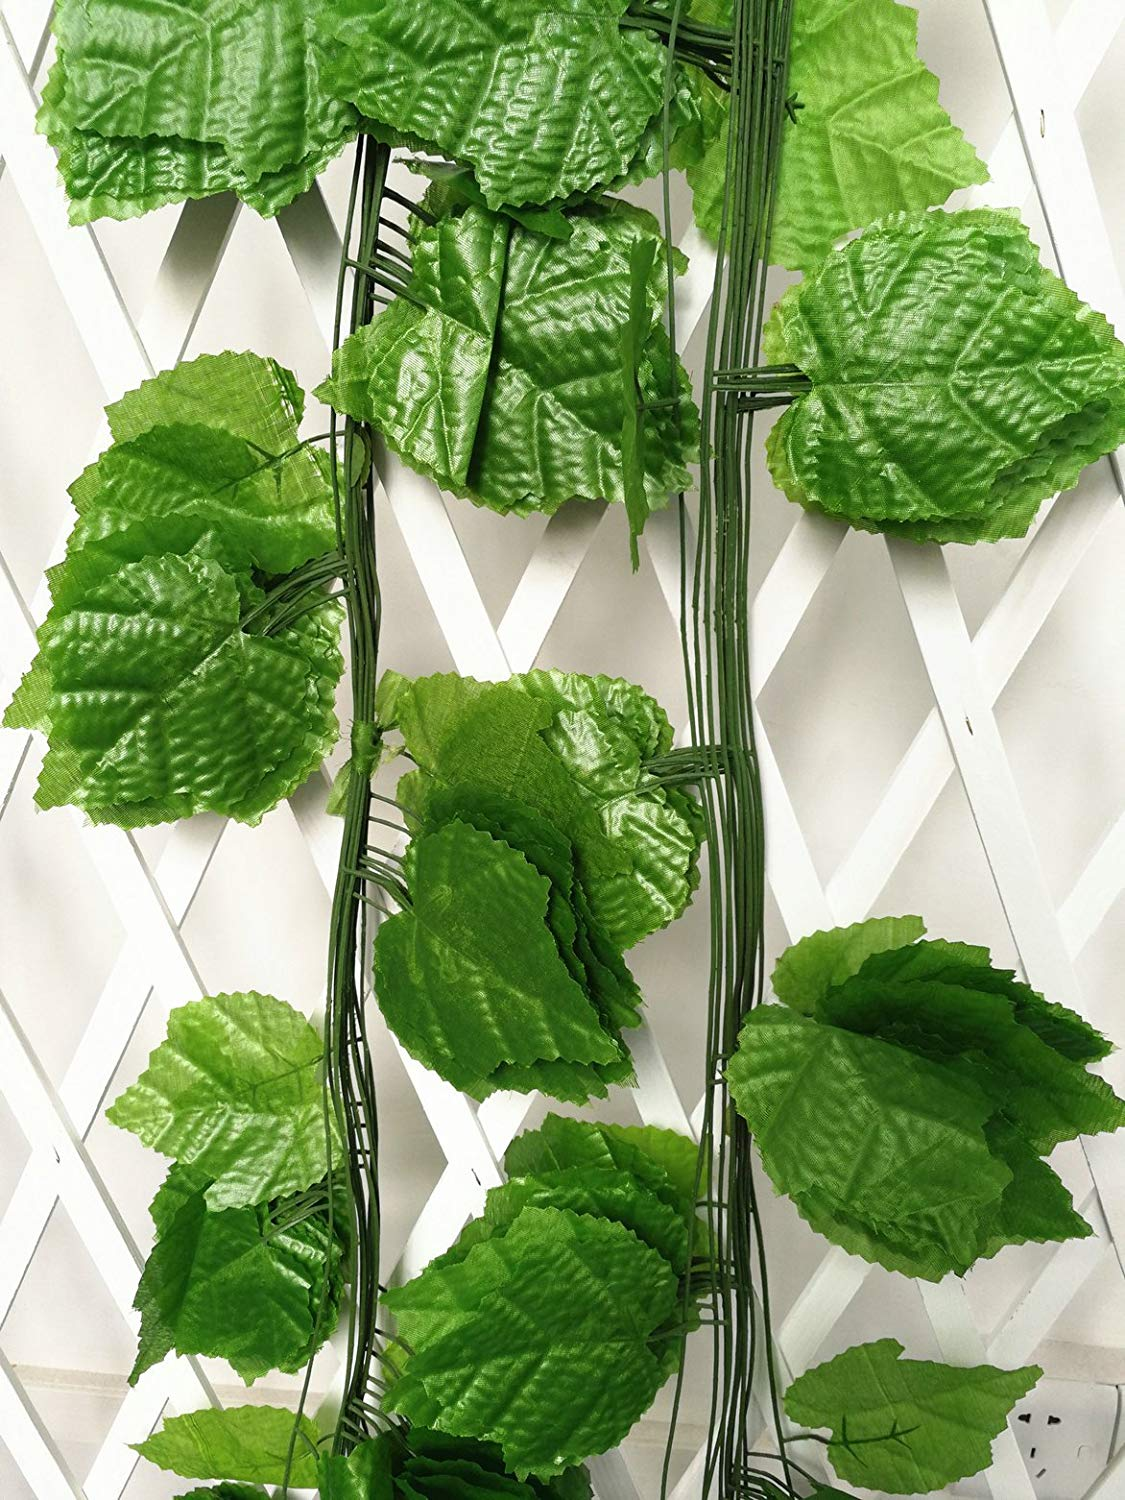 ShinyBeauty artificial vines with leaves artificial ivy panel artificial vines with leaves and grapes 96 Ft - Pack of 12